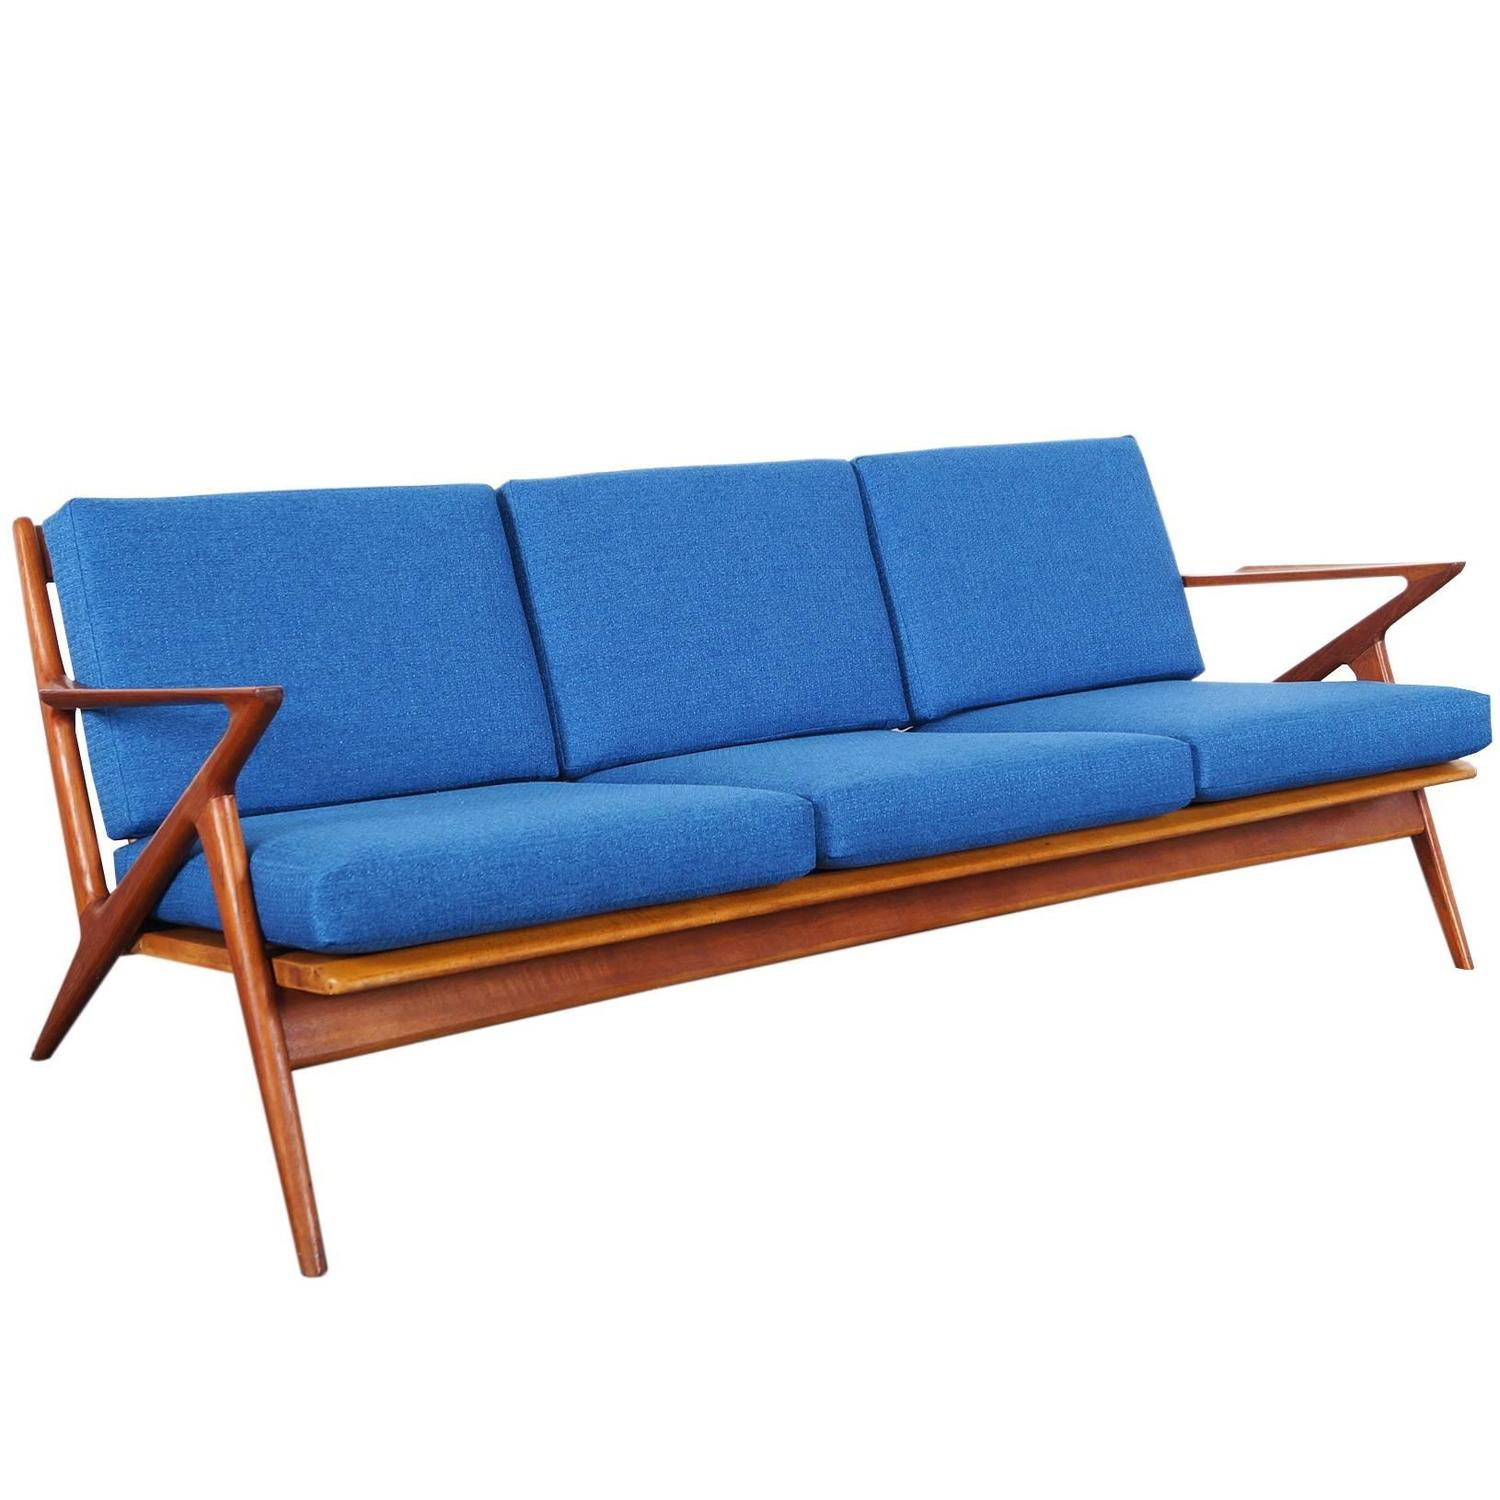 Danish modern sofa good danish modern sofa 17 with for Modern love seats